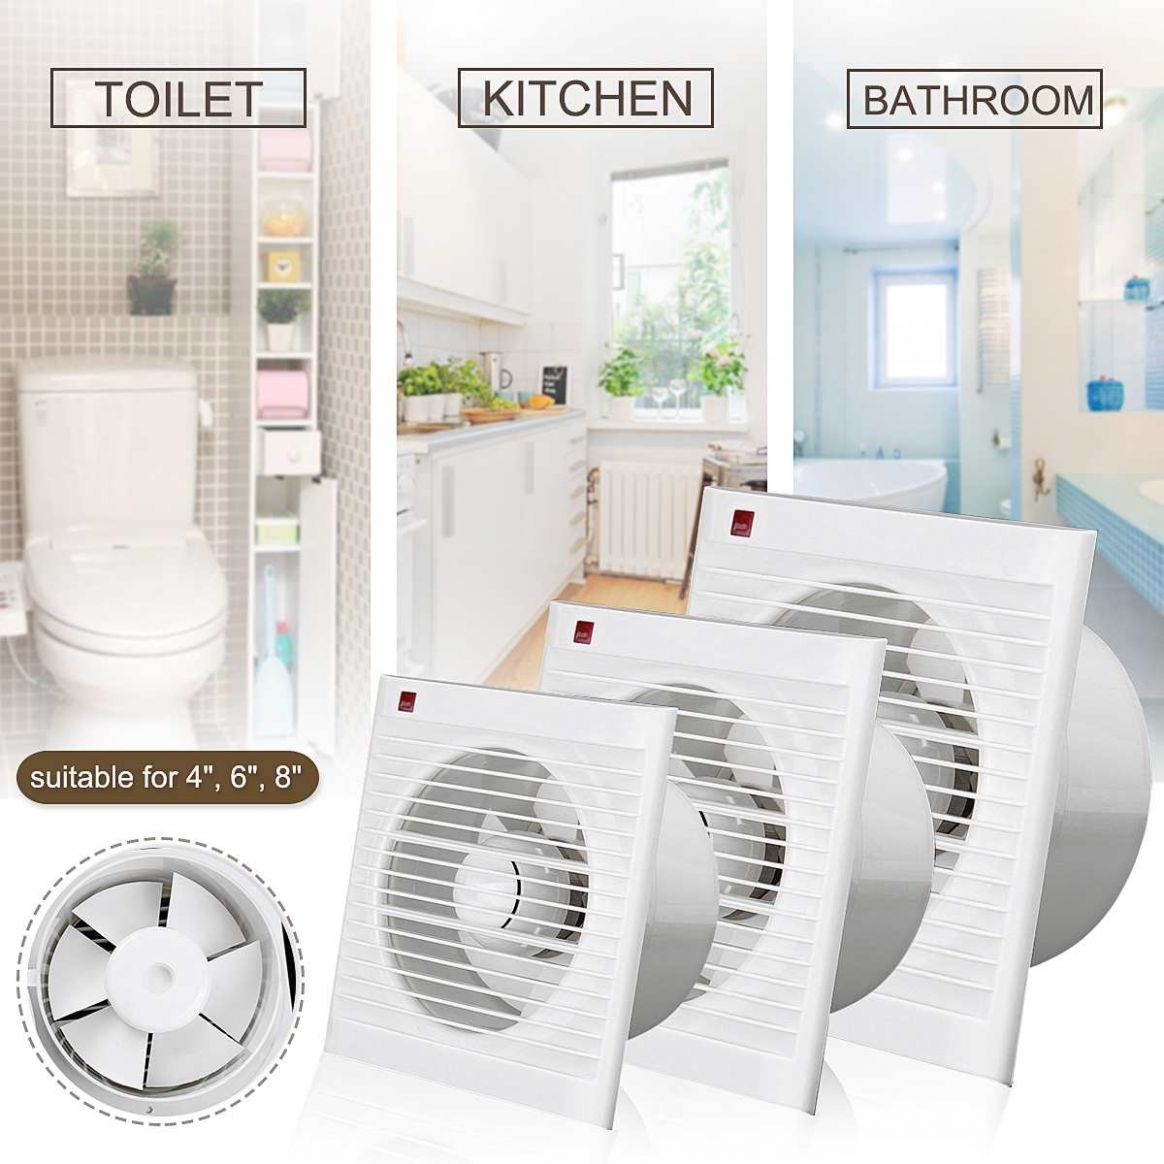 US $12.12 12% OFF|12Inch 12 Inch 12 Inch Waterproof Mute Bathroom Extractor  Exhaust Fan Window For Kitchen Toilet Ventilation Fans|Exhaust Fans| | - ..